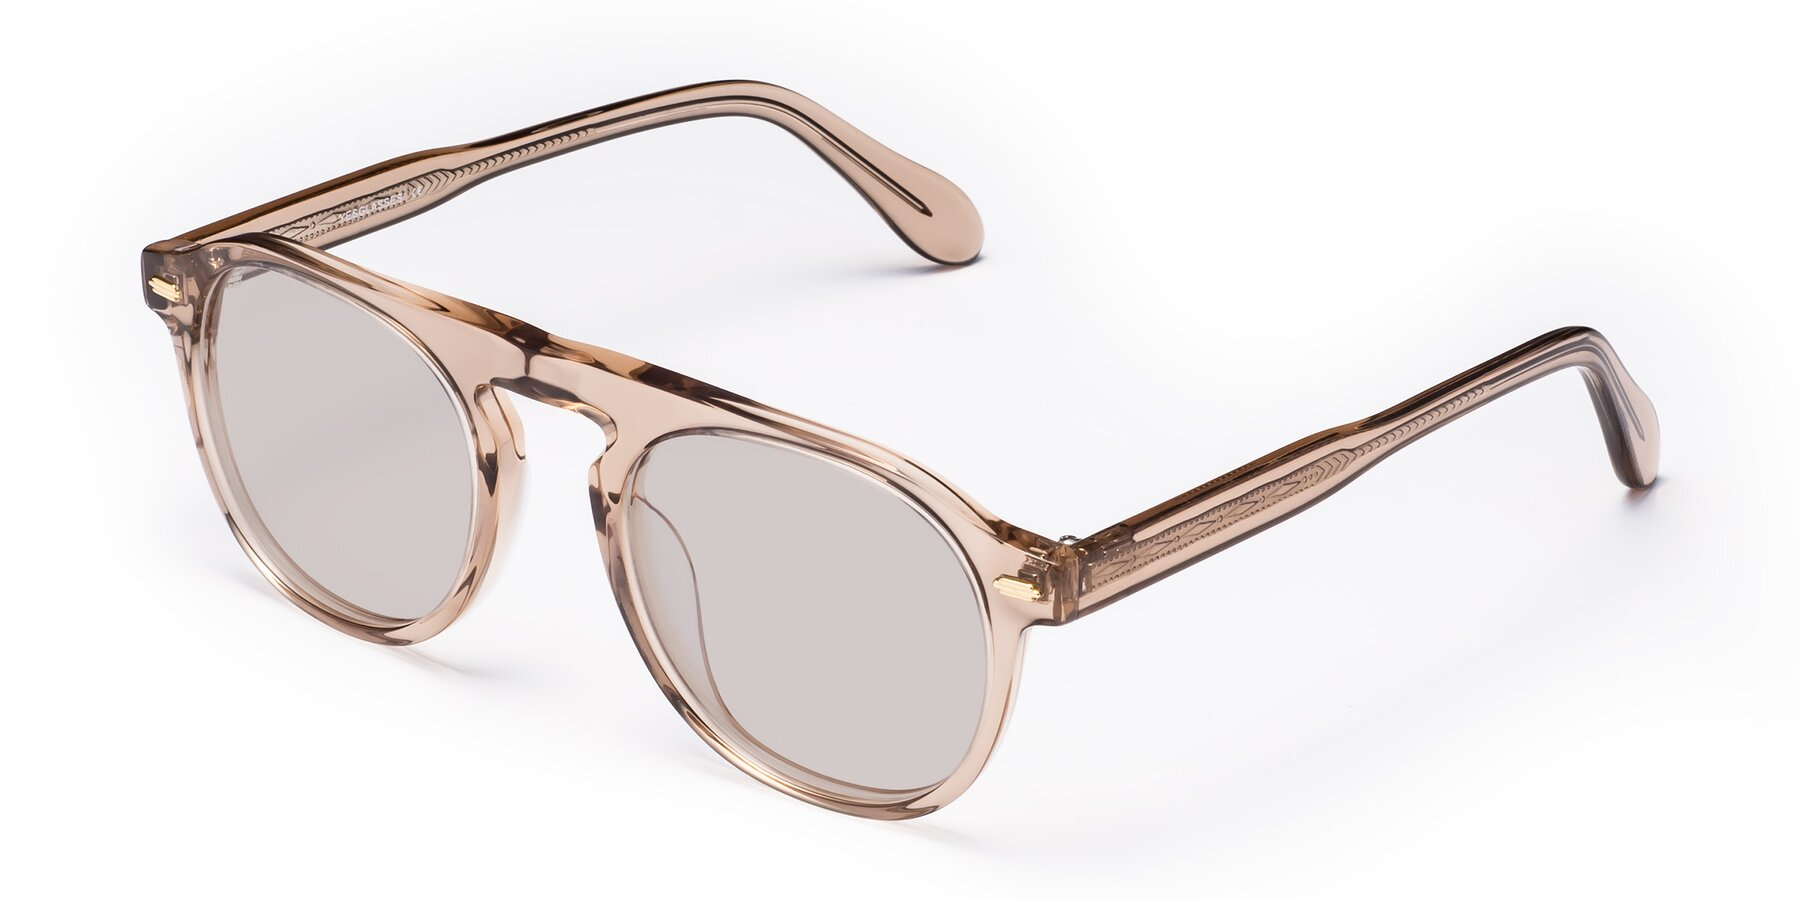 Angle of Mufasa in light Brown with Light Brown Tinted Lenses